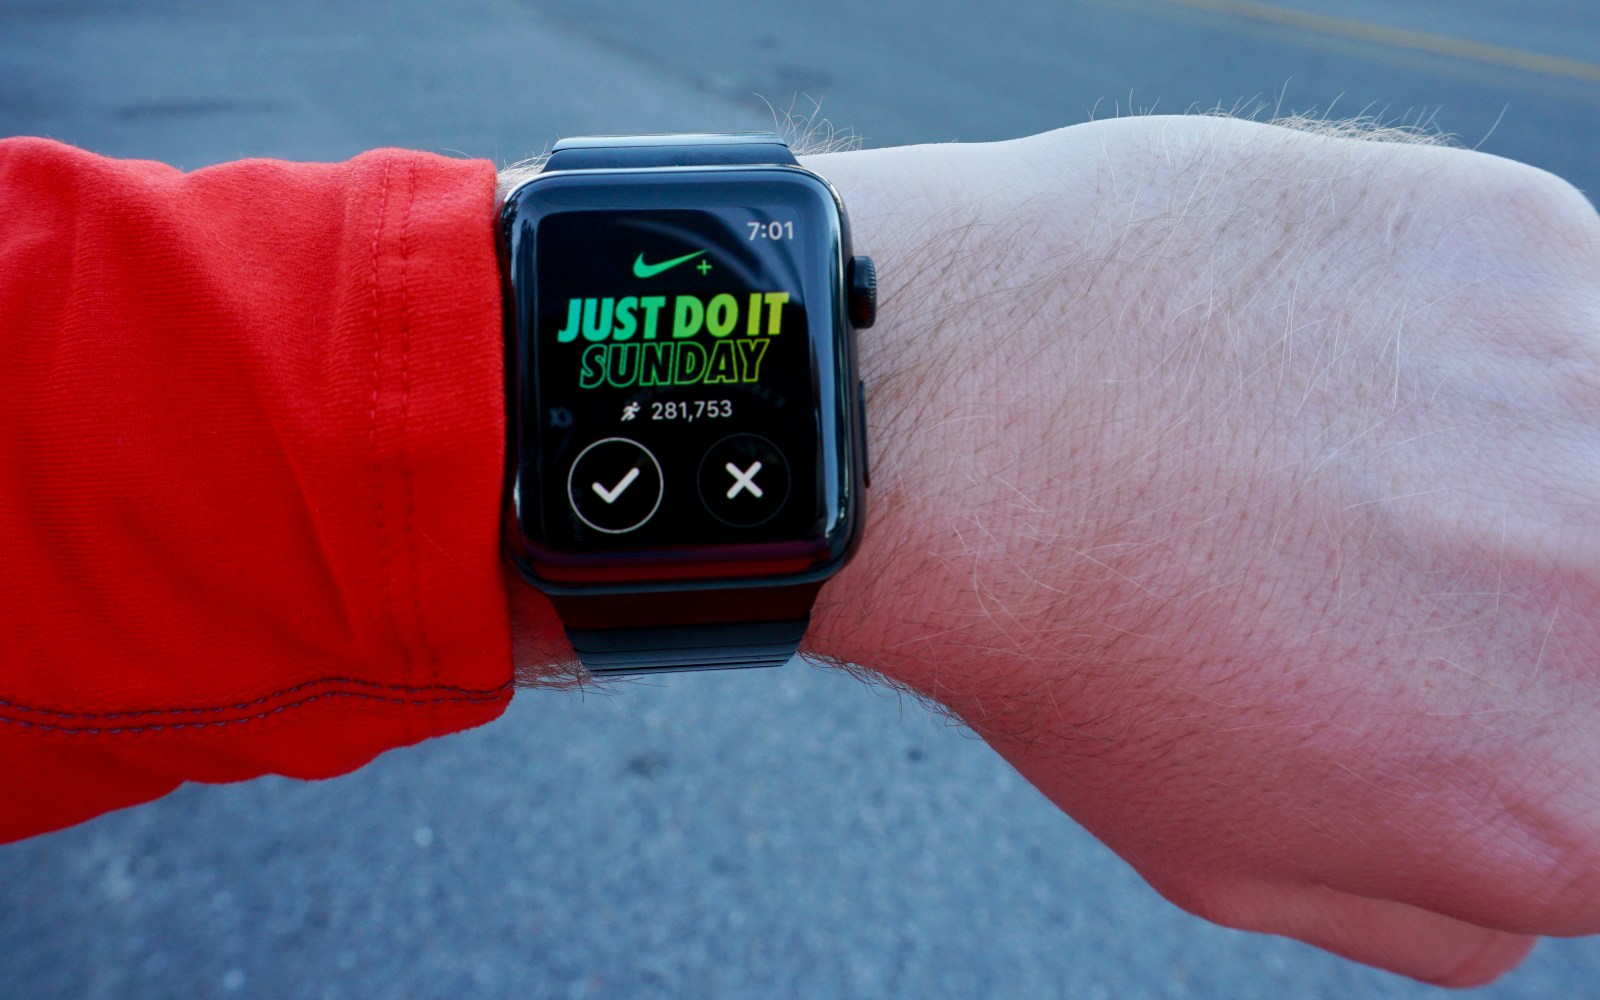 Apple Watch, New Year's resolutions, and losing 50 pounds